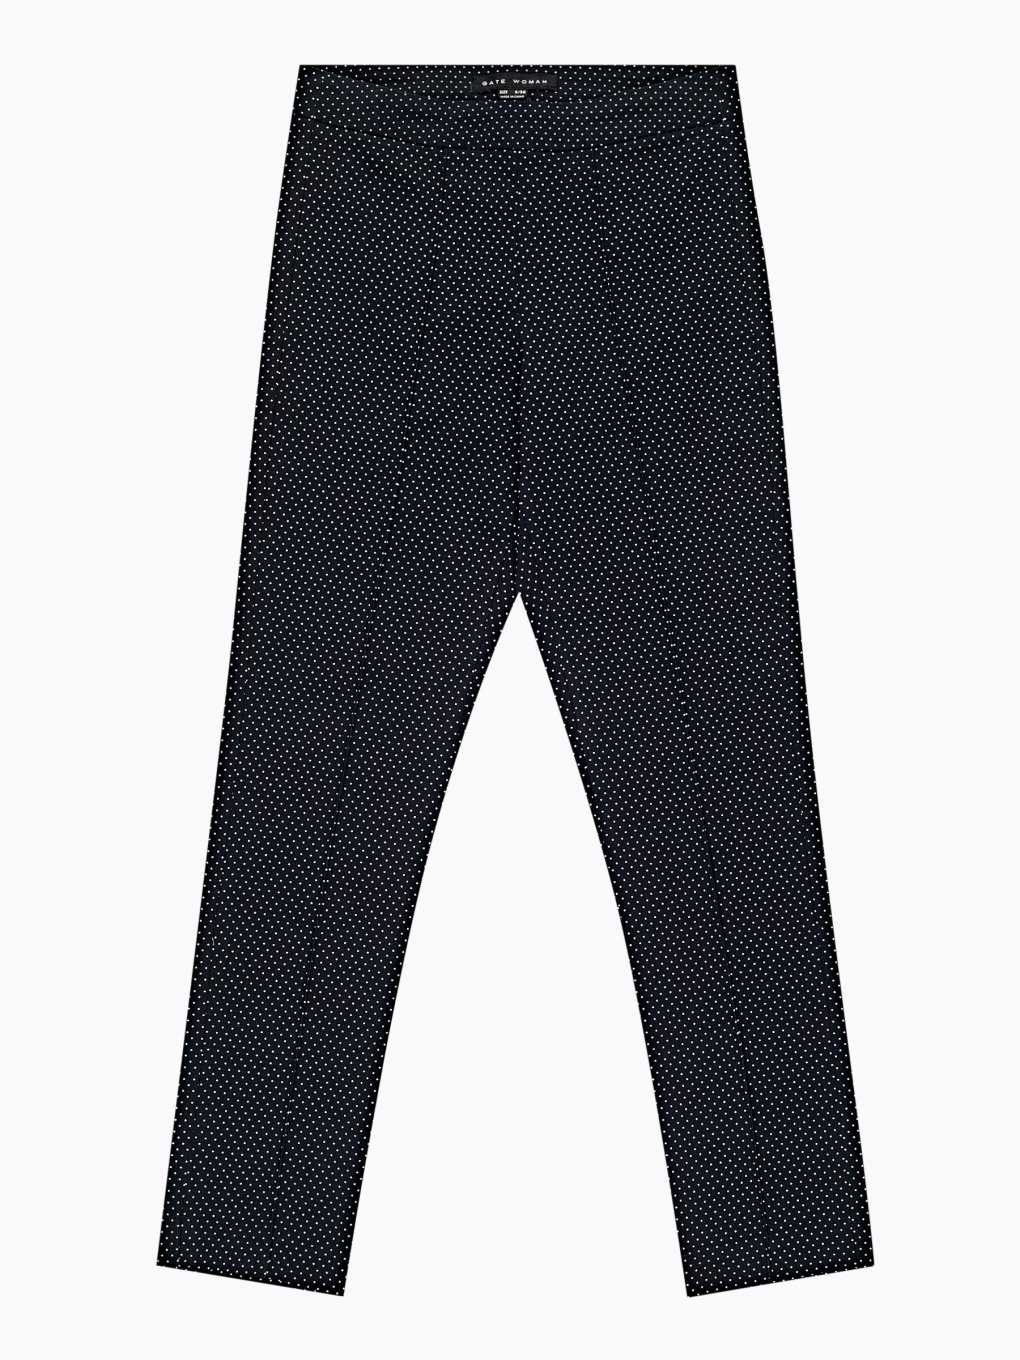 Polka dot print slim fit trousers